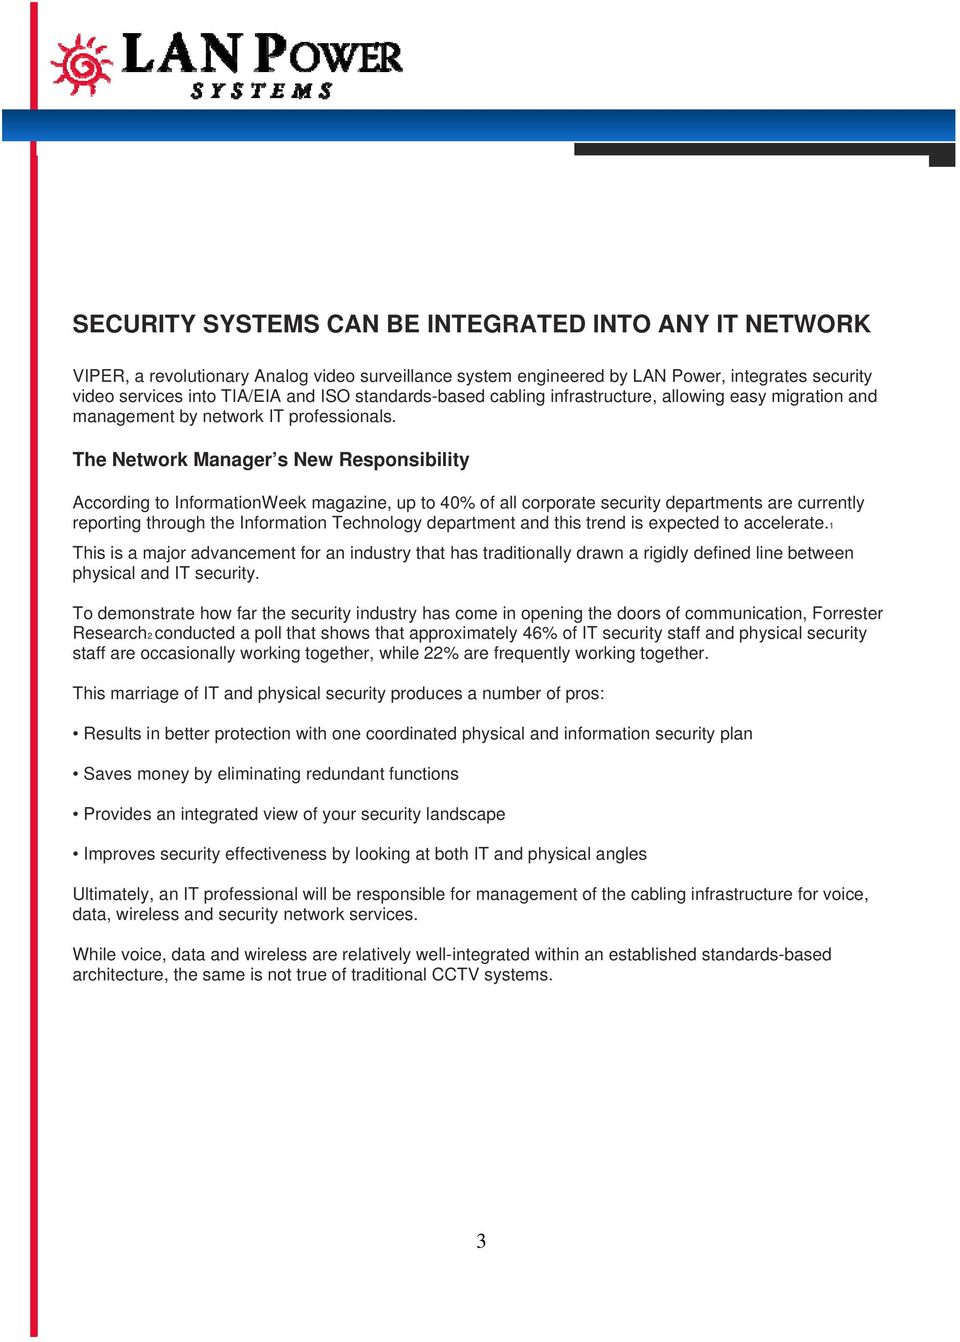 The Network Manager s New Responsibility According to InformationWeek magazine, up to 40% of all corporate security departments are currently reporting through the Information Technology department